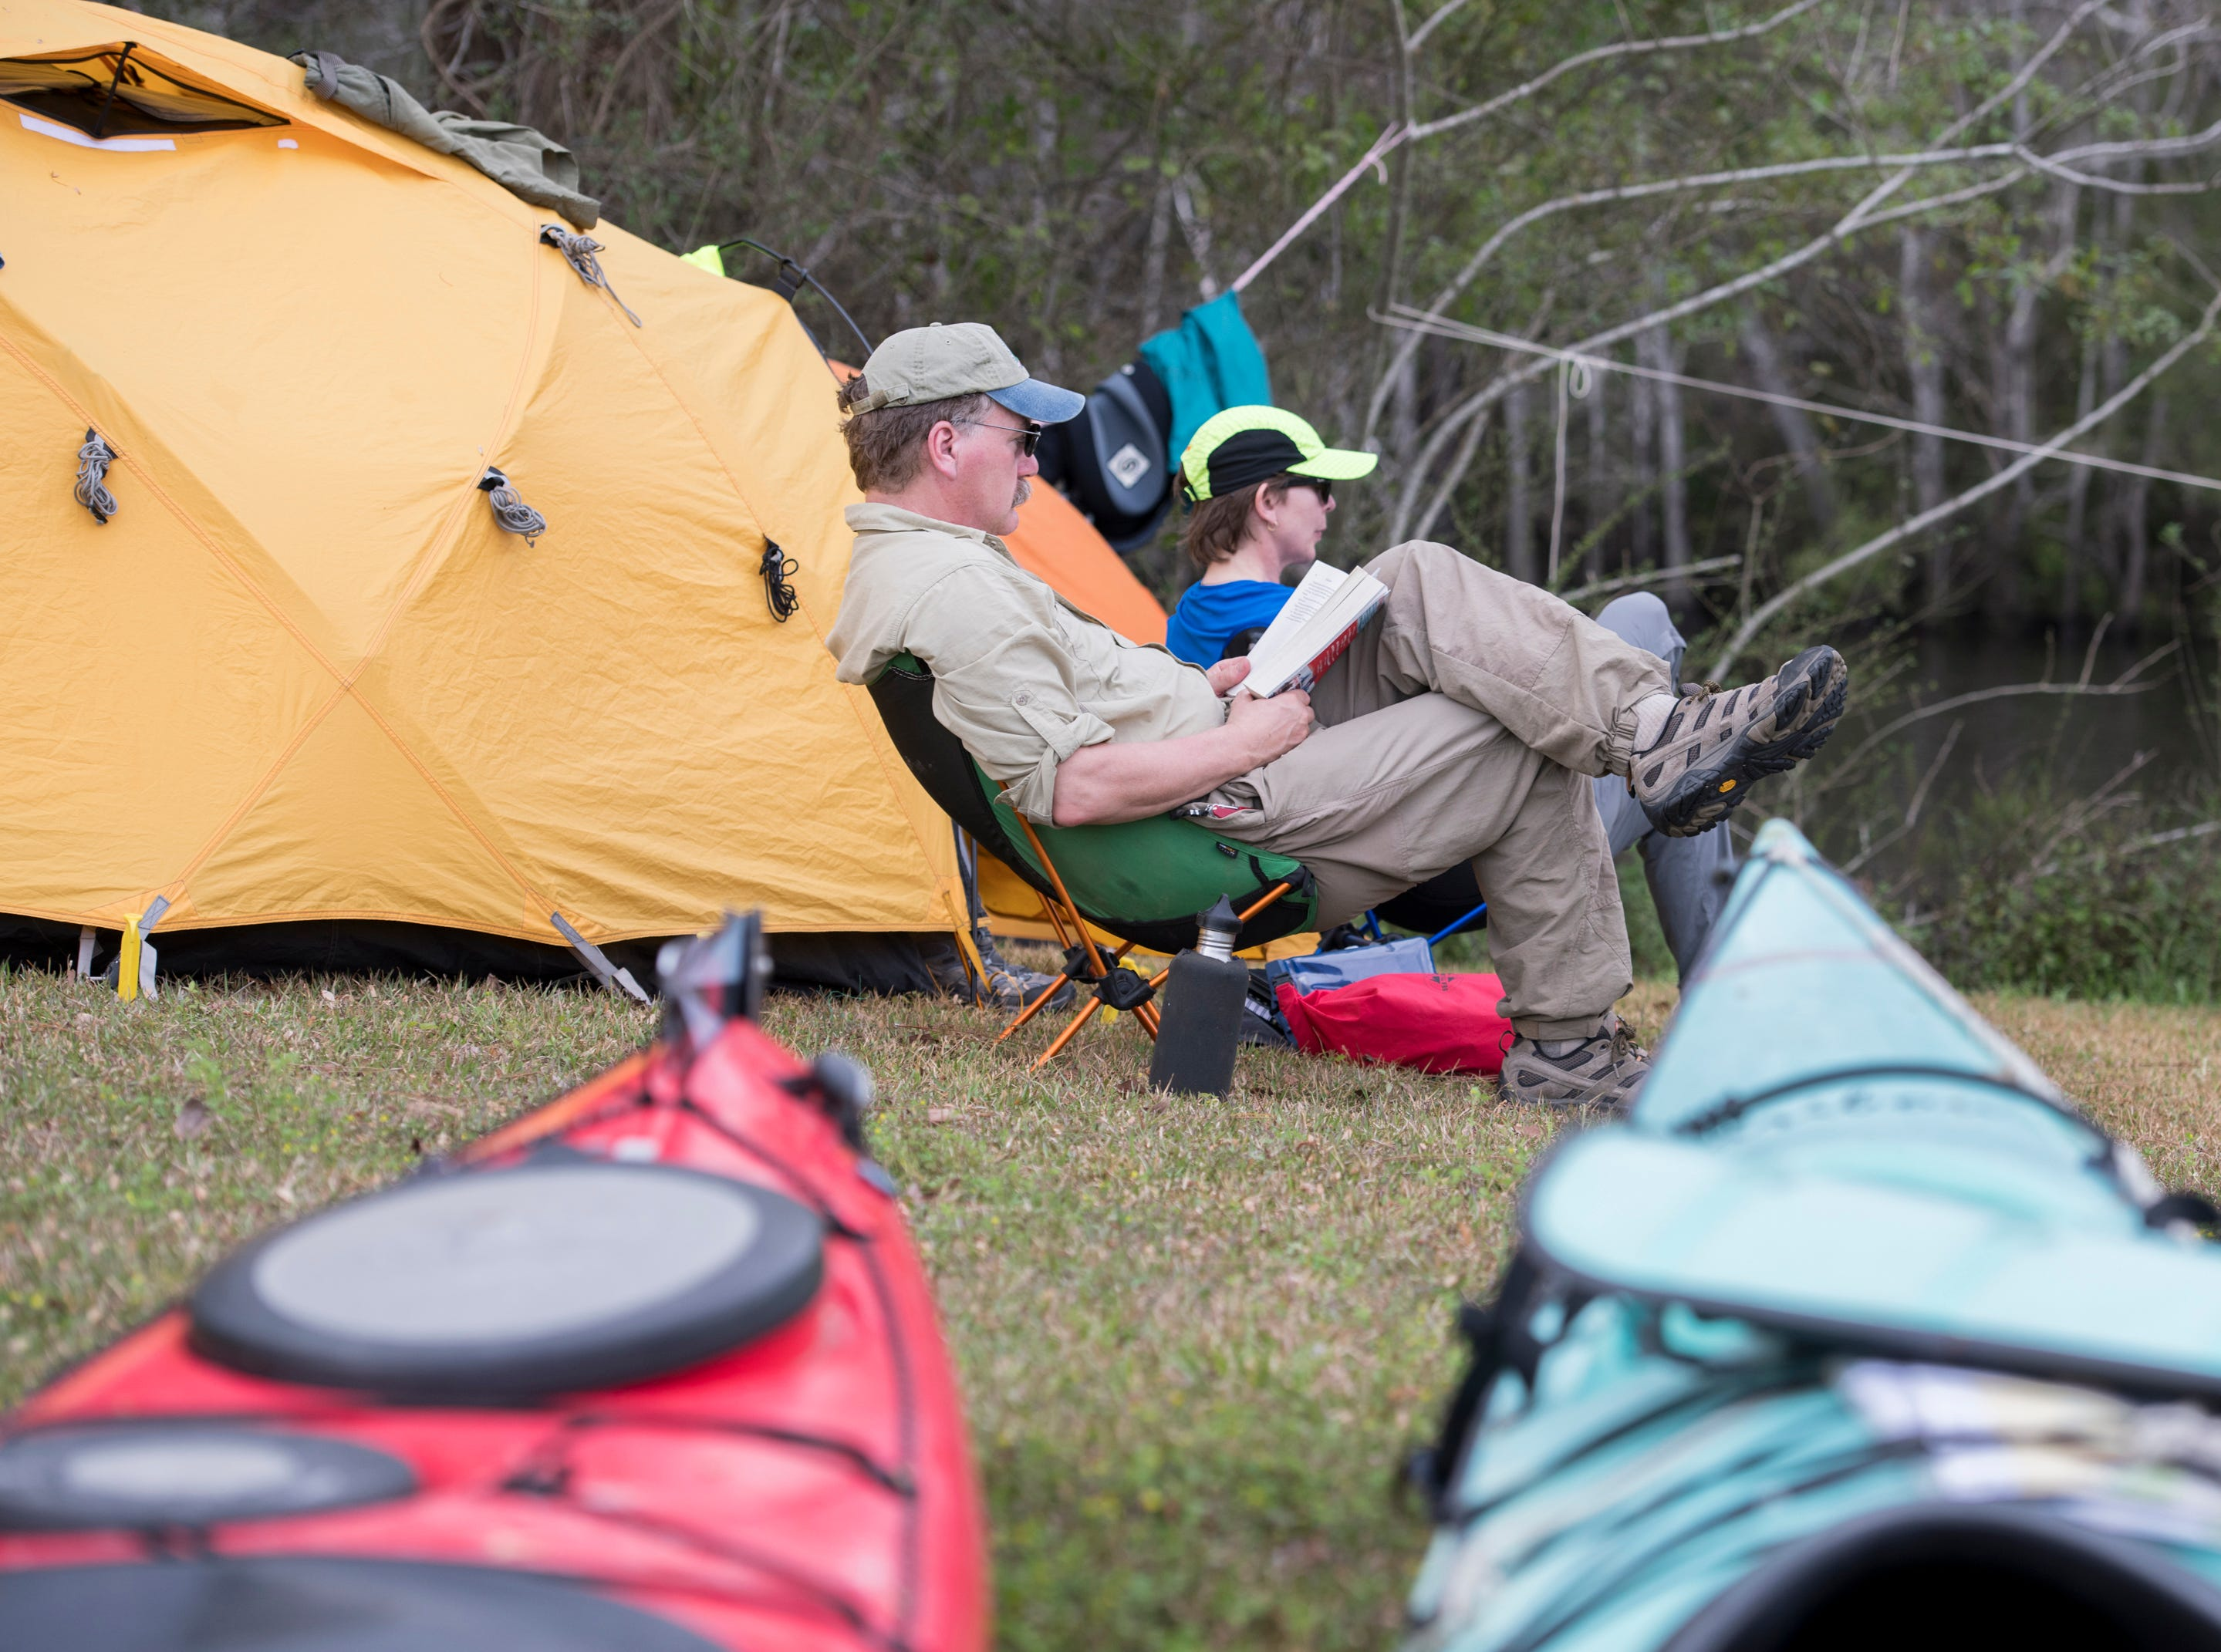 Greg Welker and Jenny Plummer-Welker, of Annapolis, Maryland, relax after setting up camp at the Wilson Robertson Boat Ramp on the Perdido River in Pensacola on Monday, March 11, 2019.  Paddle Florida is hosting 60 paddlers on a 5-day, 60-mile journey from Otto Hill to Perdido Pass.  Florida is currently working with Alabama to establish a paddling trail on the Perdido River.